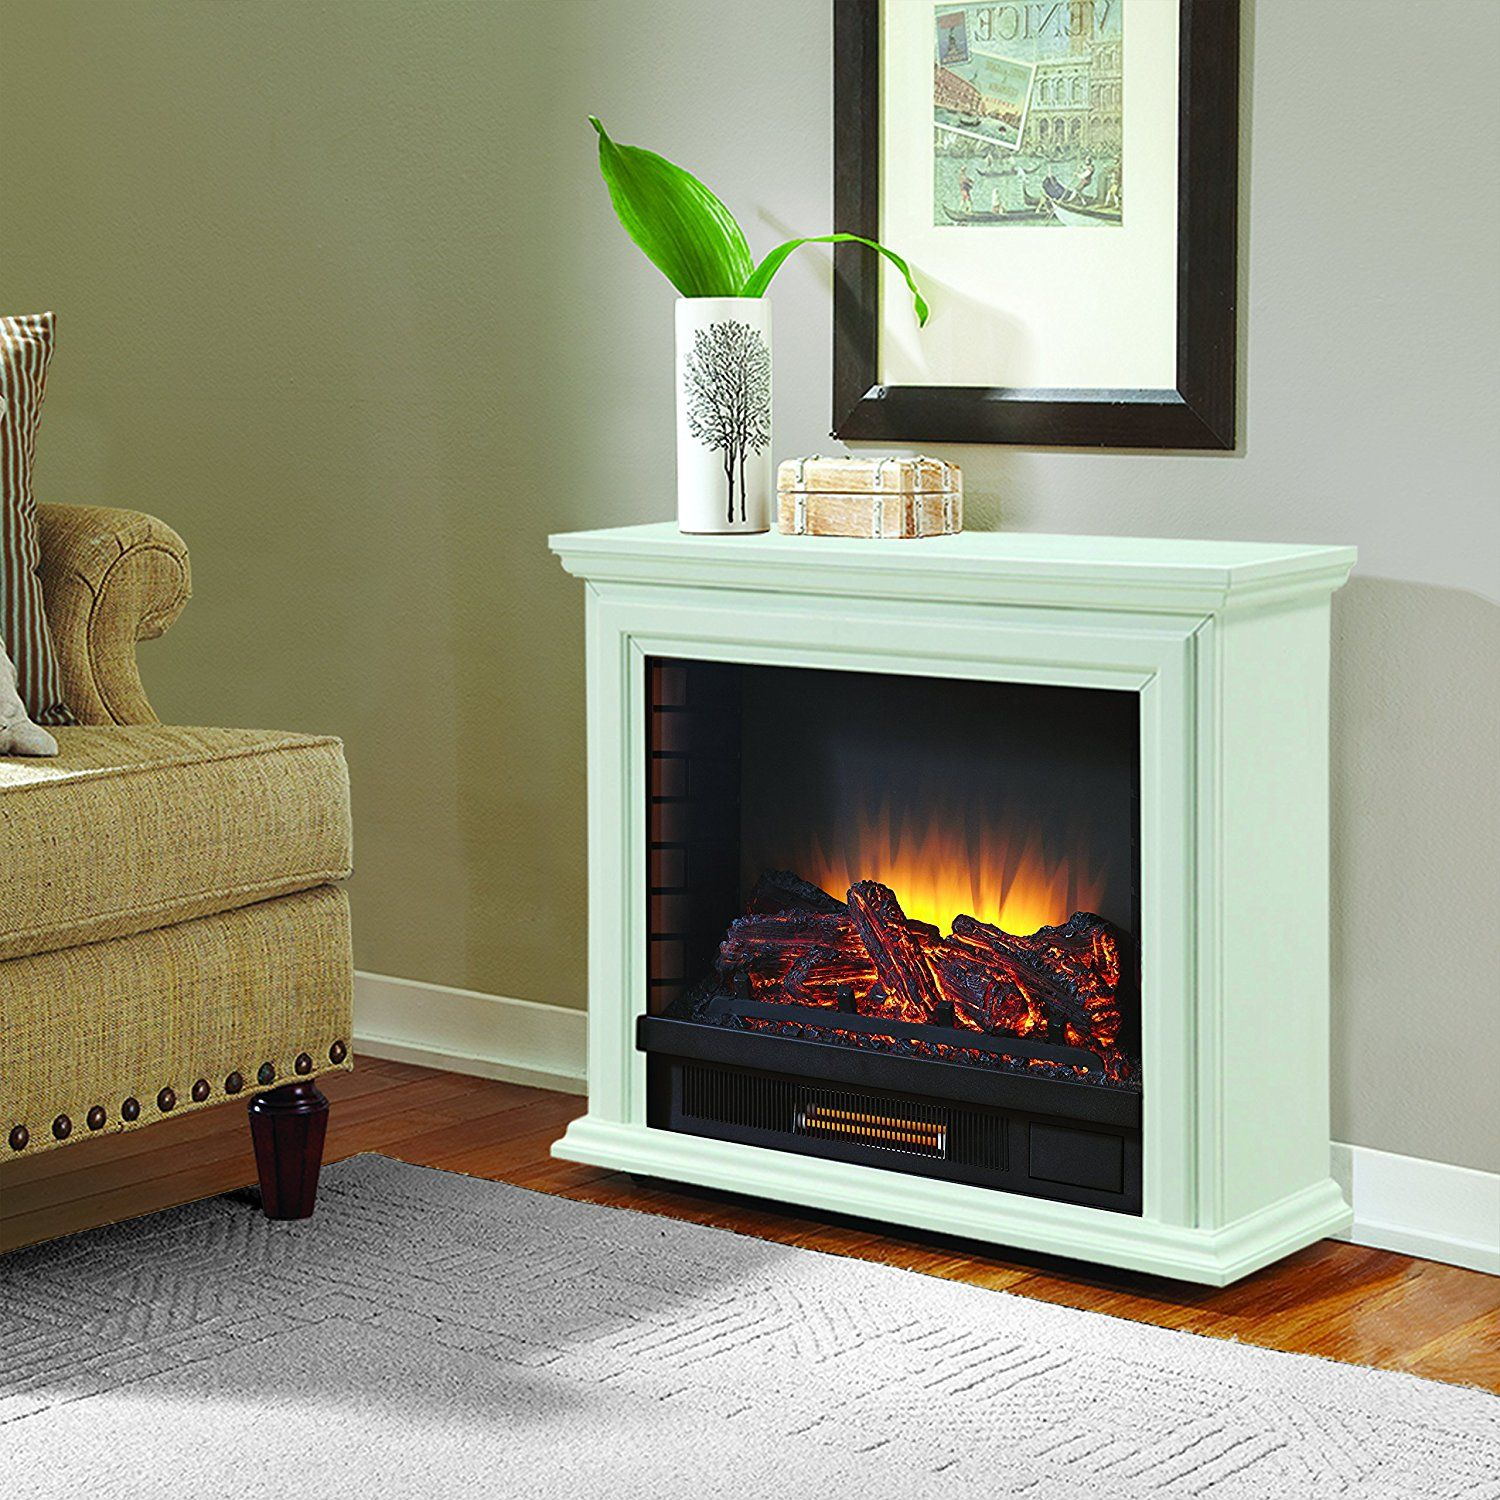 pleasant hearth 31 75 in w white infrared quartz electric fireplace rh lowes com